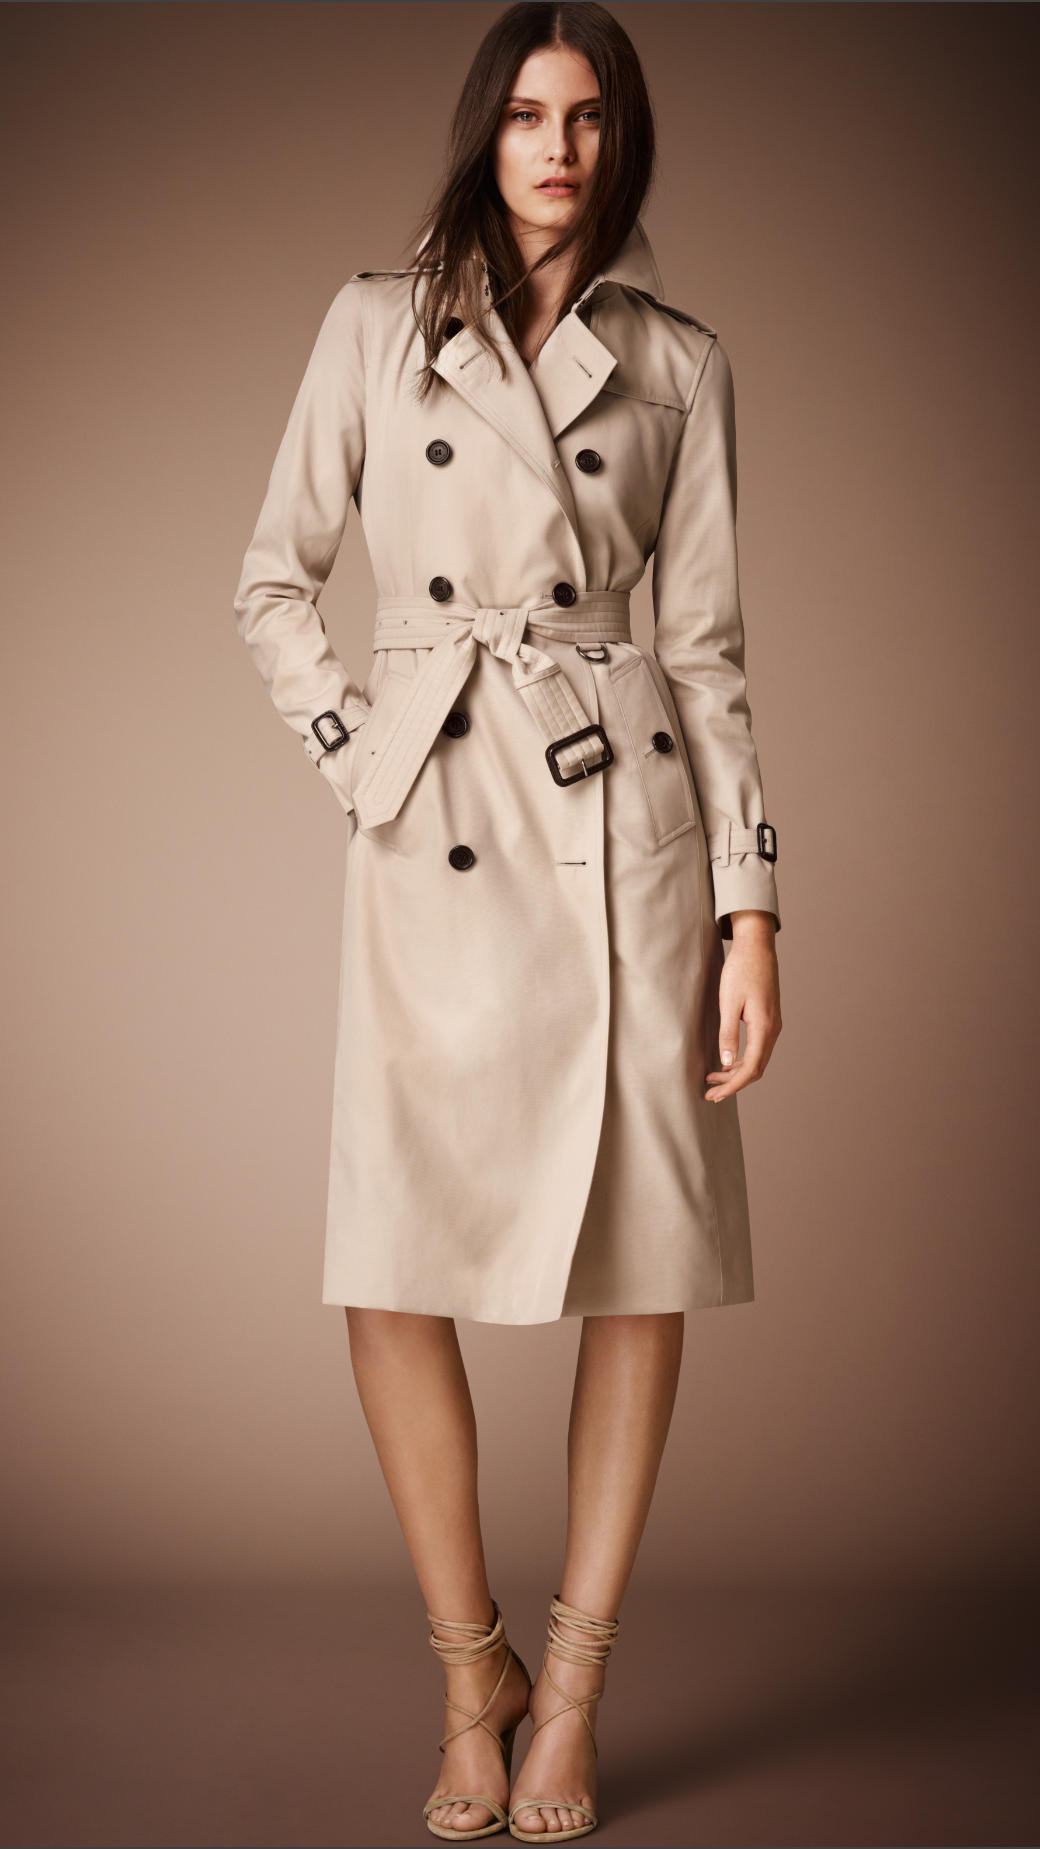 Lyst - Burberry The Kensington - Long Heritage Trench Coat in Natural b17ce4068a1